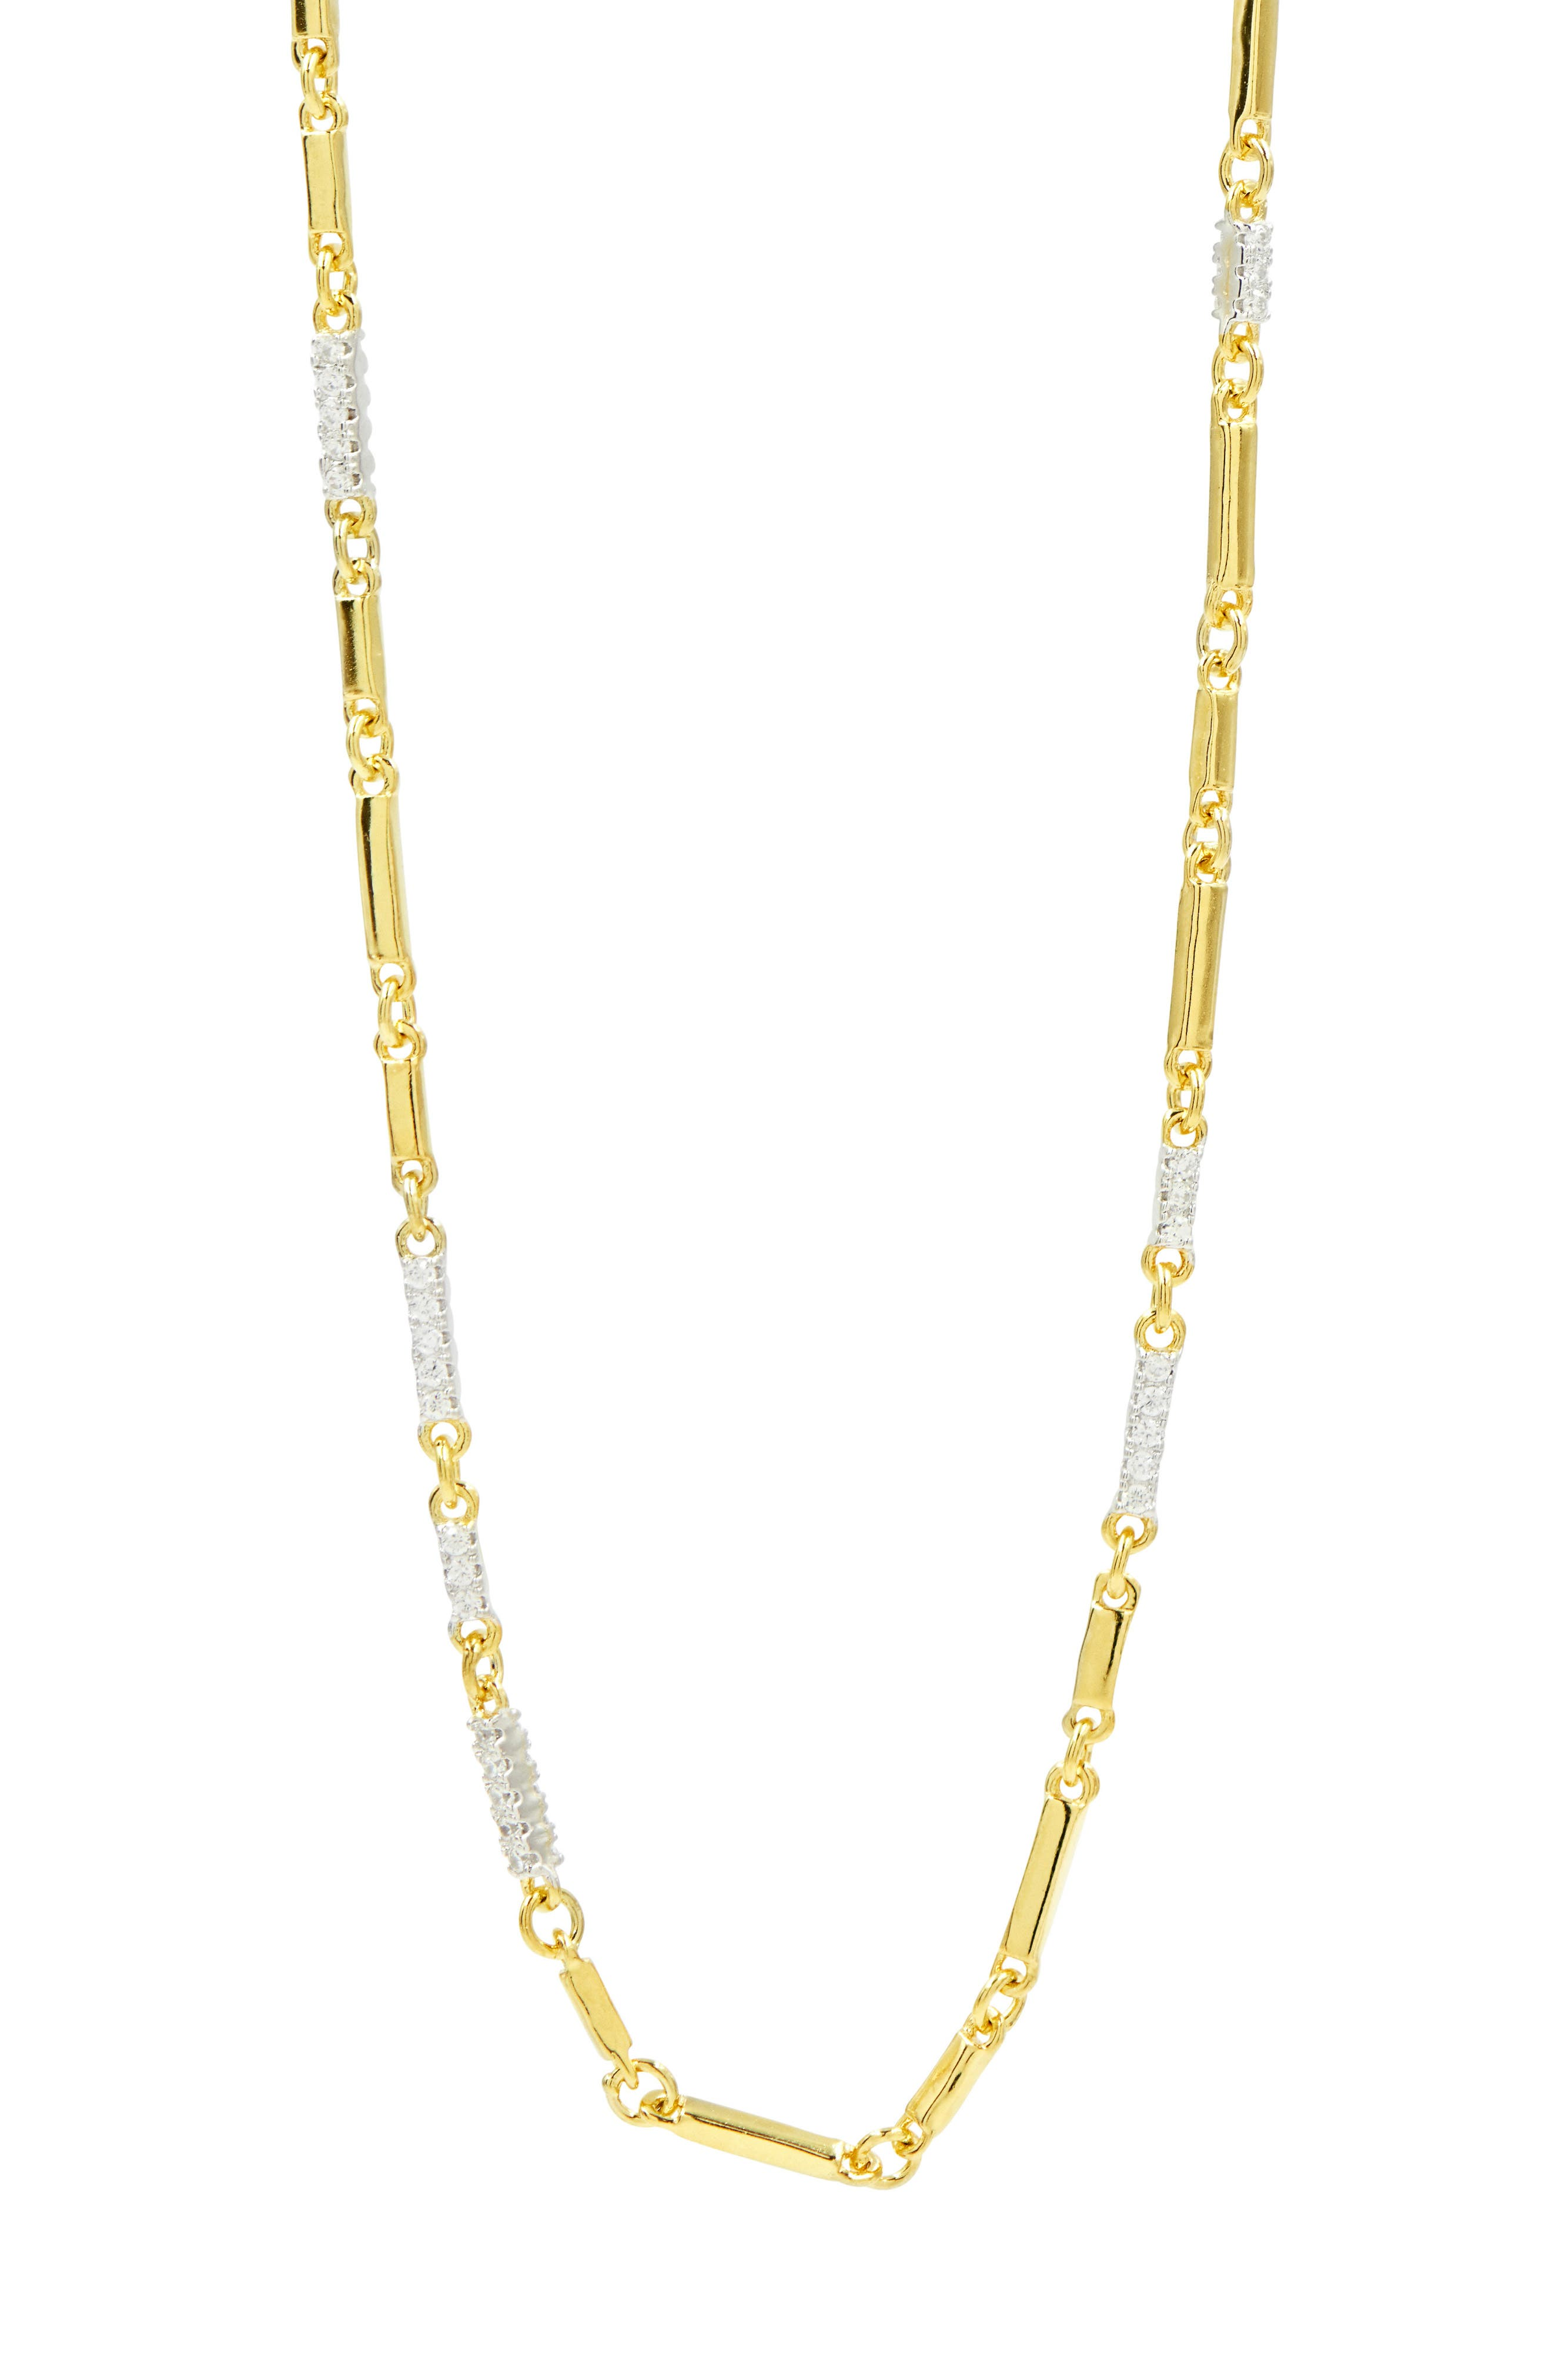 Radiance Cubic Zirconia Chain Necklace,                         Main,                         color, Silver/ Gold